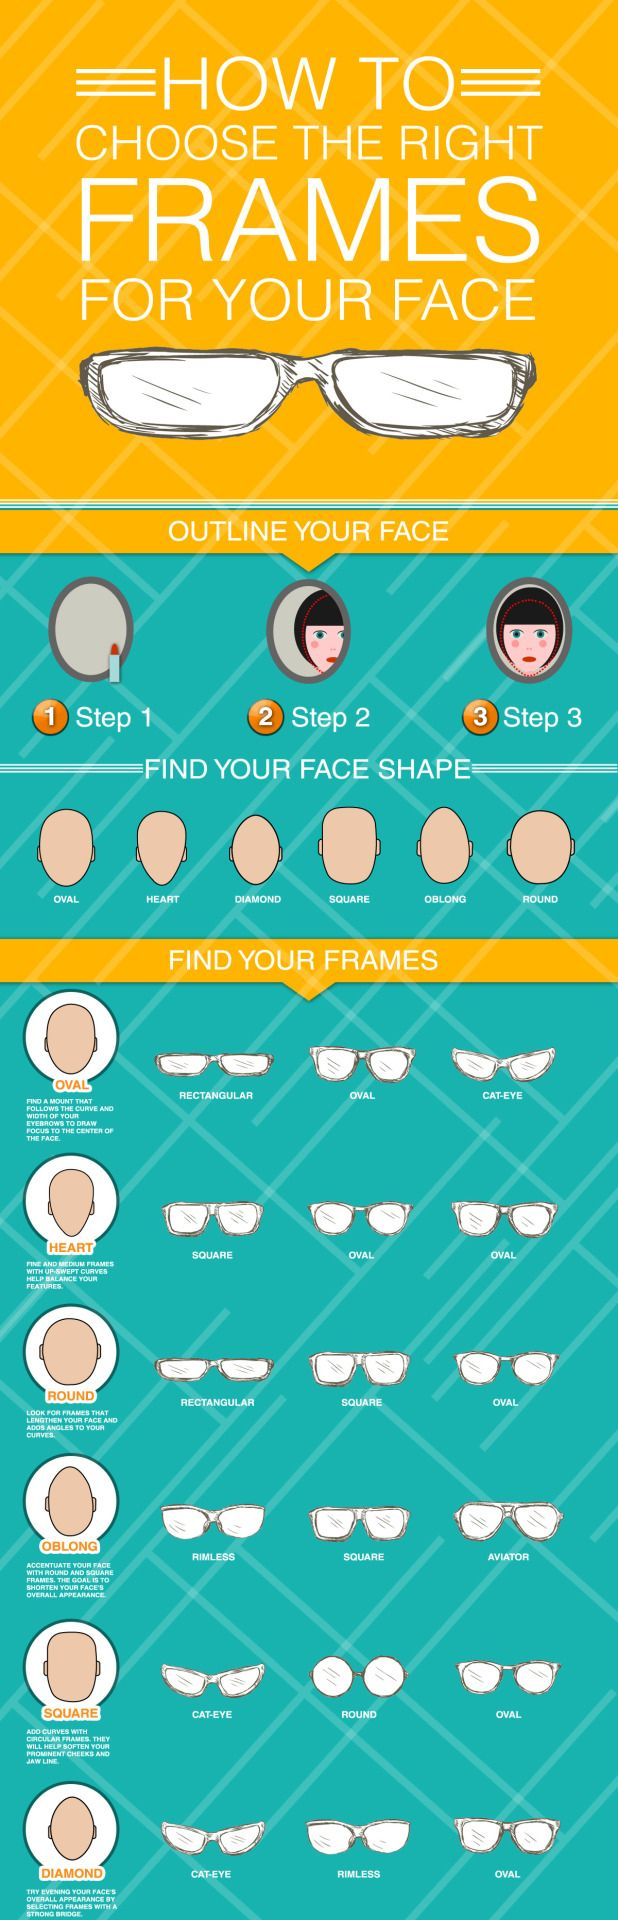 Best 25+ Bangs for oval faces ideas on Pinterest ...